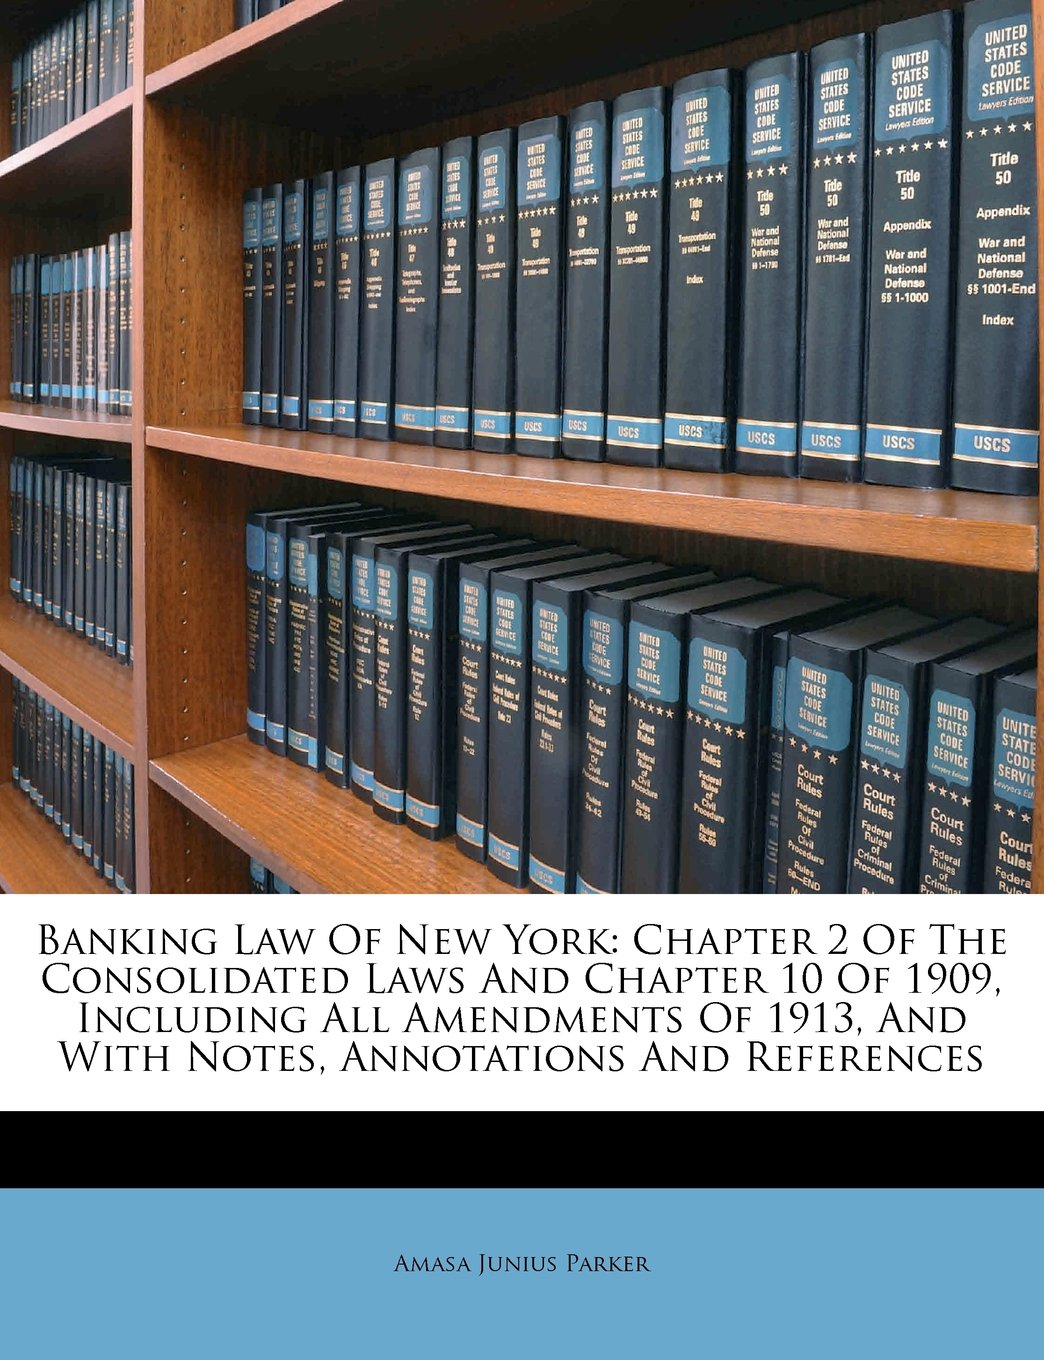 Download Banking Law Of New York: Chapter 2 Of The Consolidated Laws And Chapter 10 Of 1909, Including All Amendments Of 1913, And With Notes, Annotations And References PDF